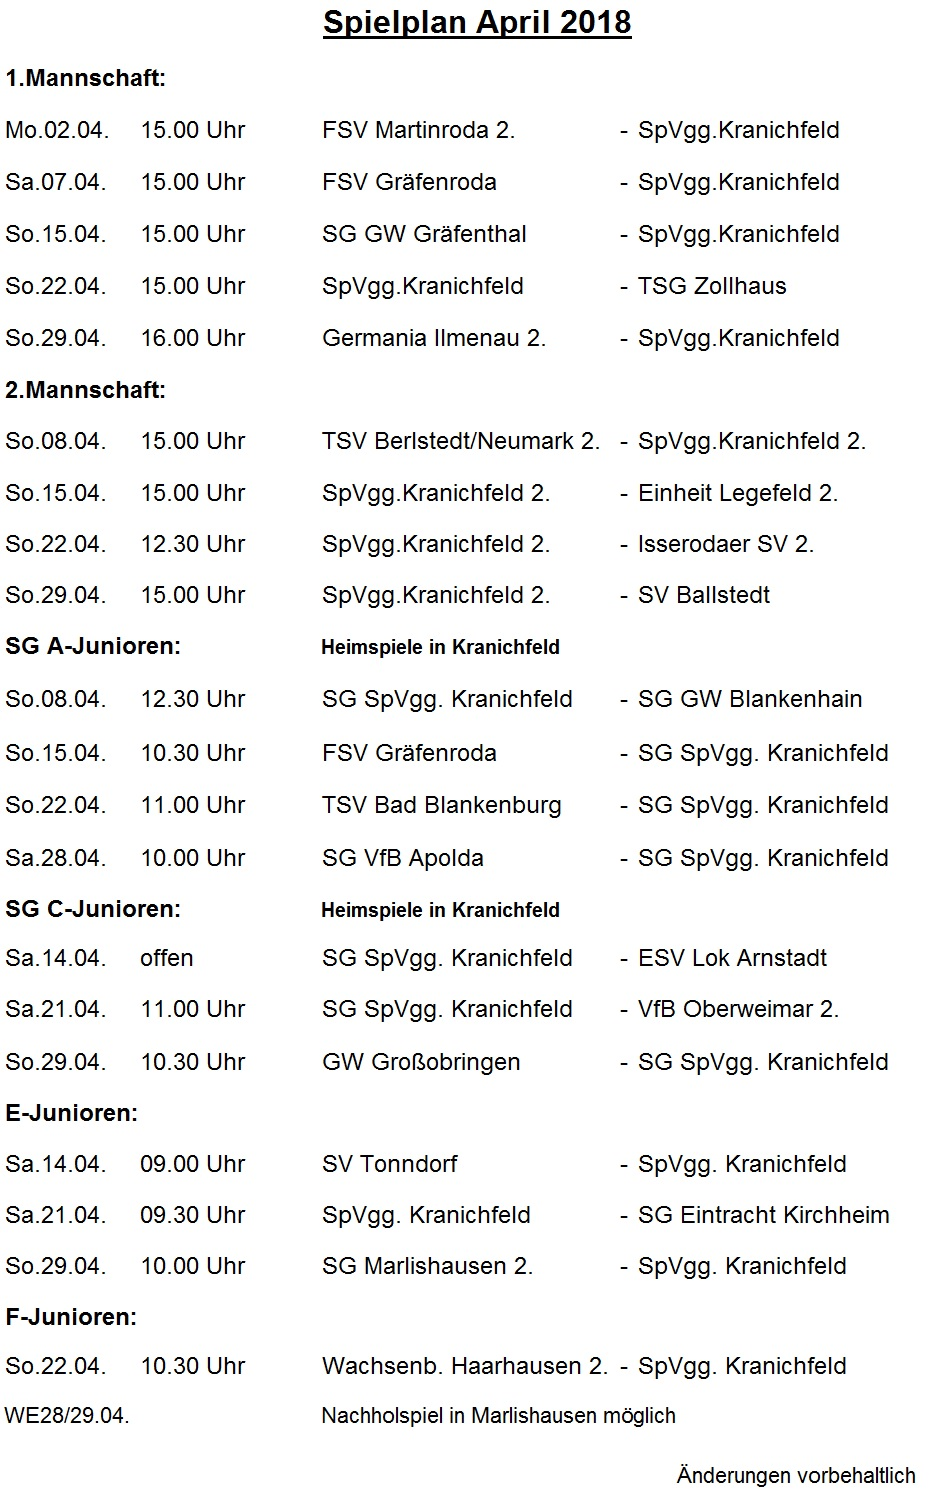 Spielplan April18